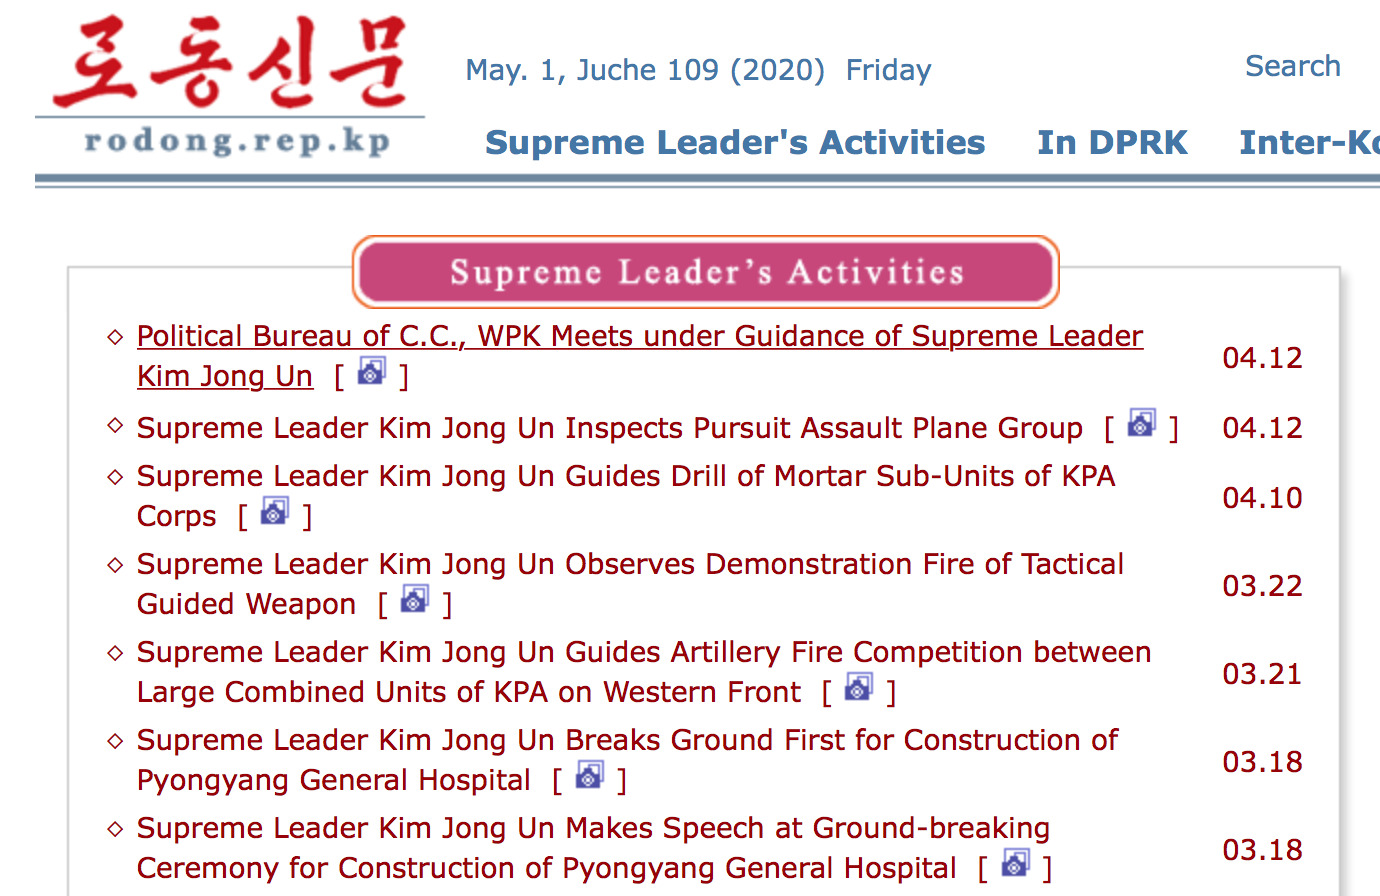 """Supreme Leader's Activities"" section of the state-run Rodong Sinmun (Labour News) of 1 May 2020 does not list any appearances of Kim Jong-Un after April 12."